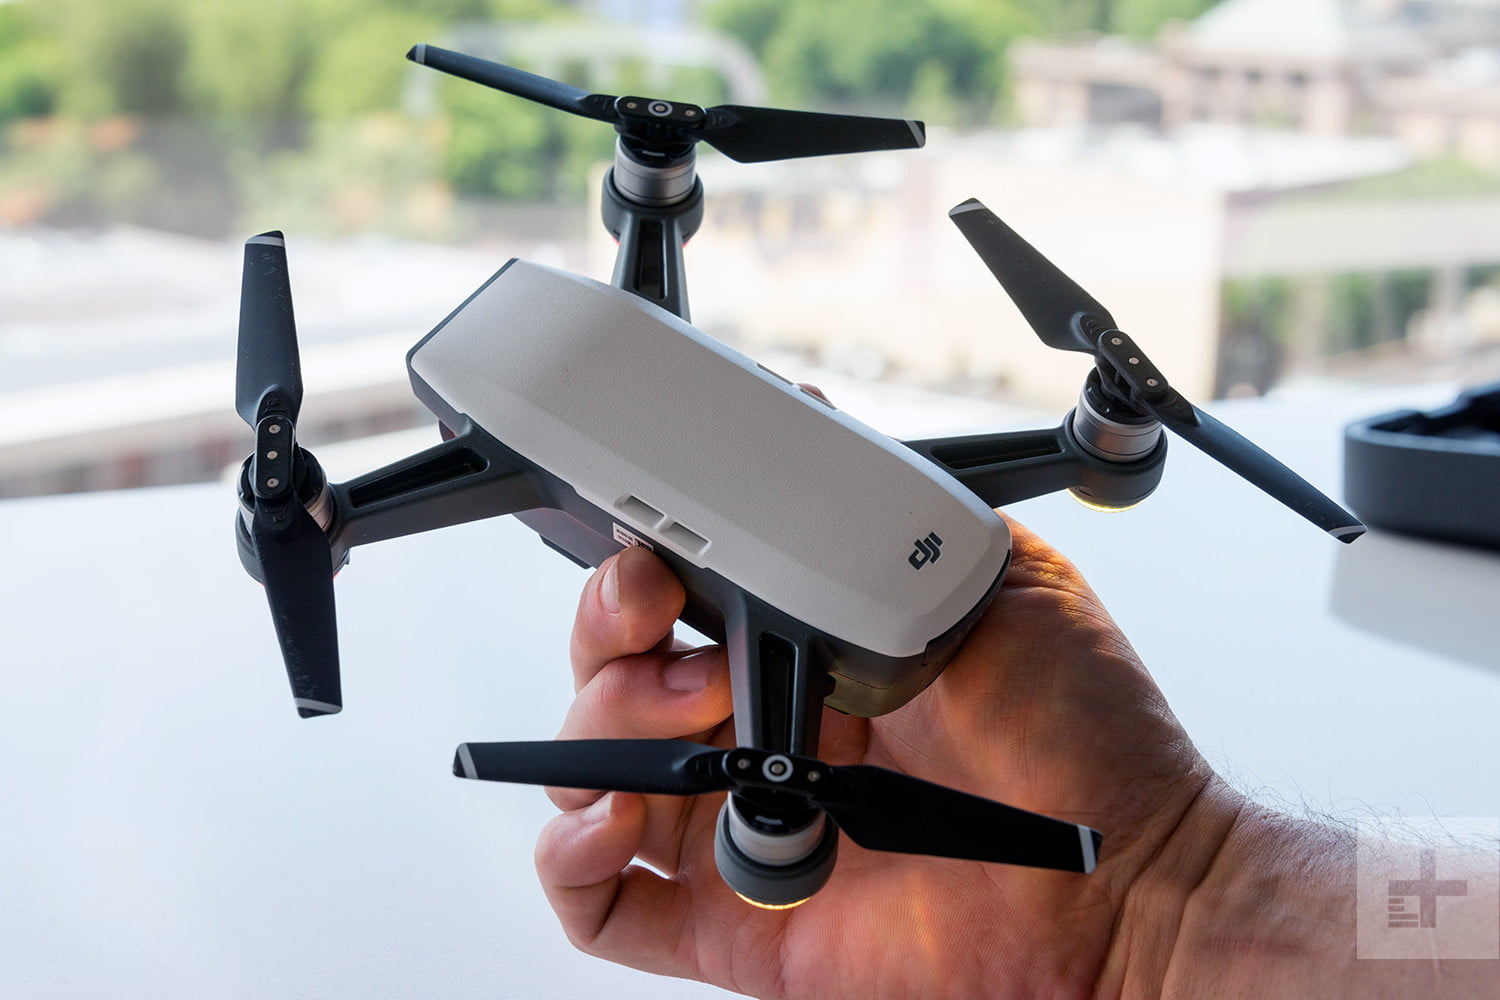 remote drones with Dji Spark on Dji Mavic Pro Carbon Fiber Drone Black Skin Wrap as well Drone 215736 term drone page 1 position 38 additionally Vdci Unveils Its All In All  pact Ground Control Station For Any Uav Like Dji And 3d Robotics in addition Drone With Video Camera additionally DJI Matrice 210 R  Industrial Drone p 1756.